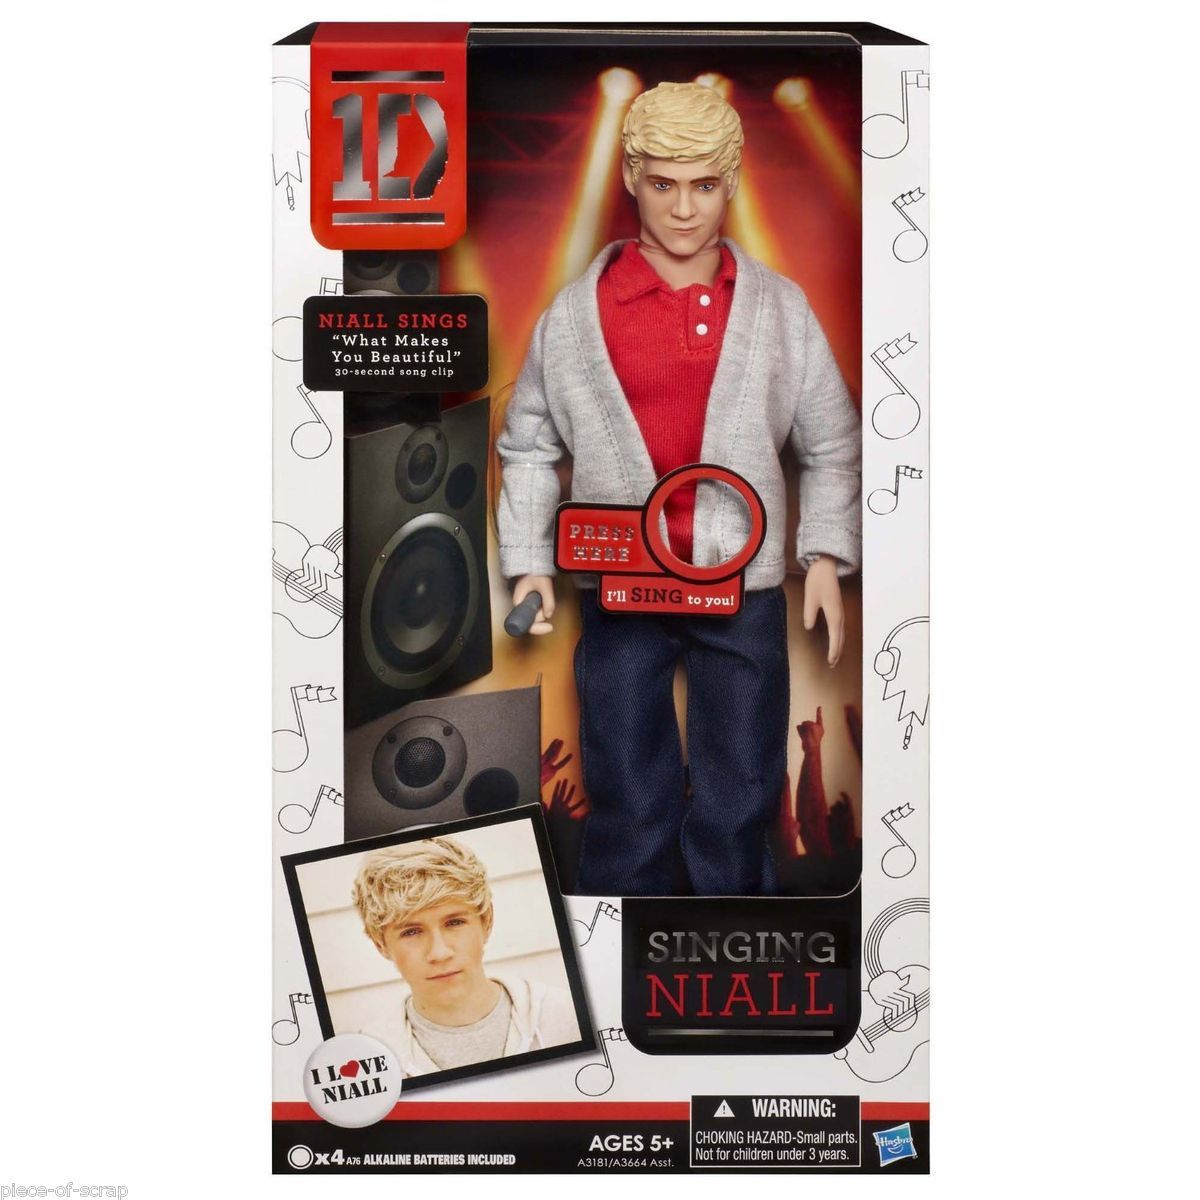 NEW 1D NIALL HORAN One Direction Collector Doll Boy Band Dolls SINGING